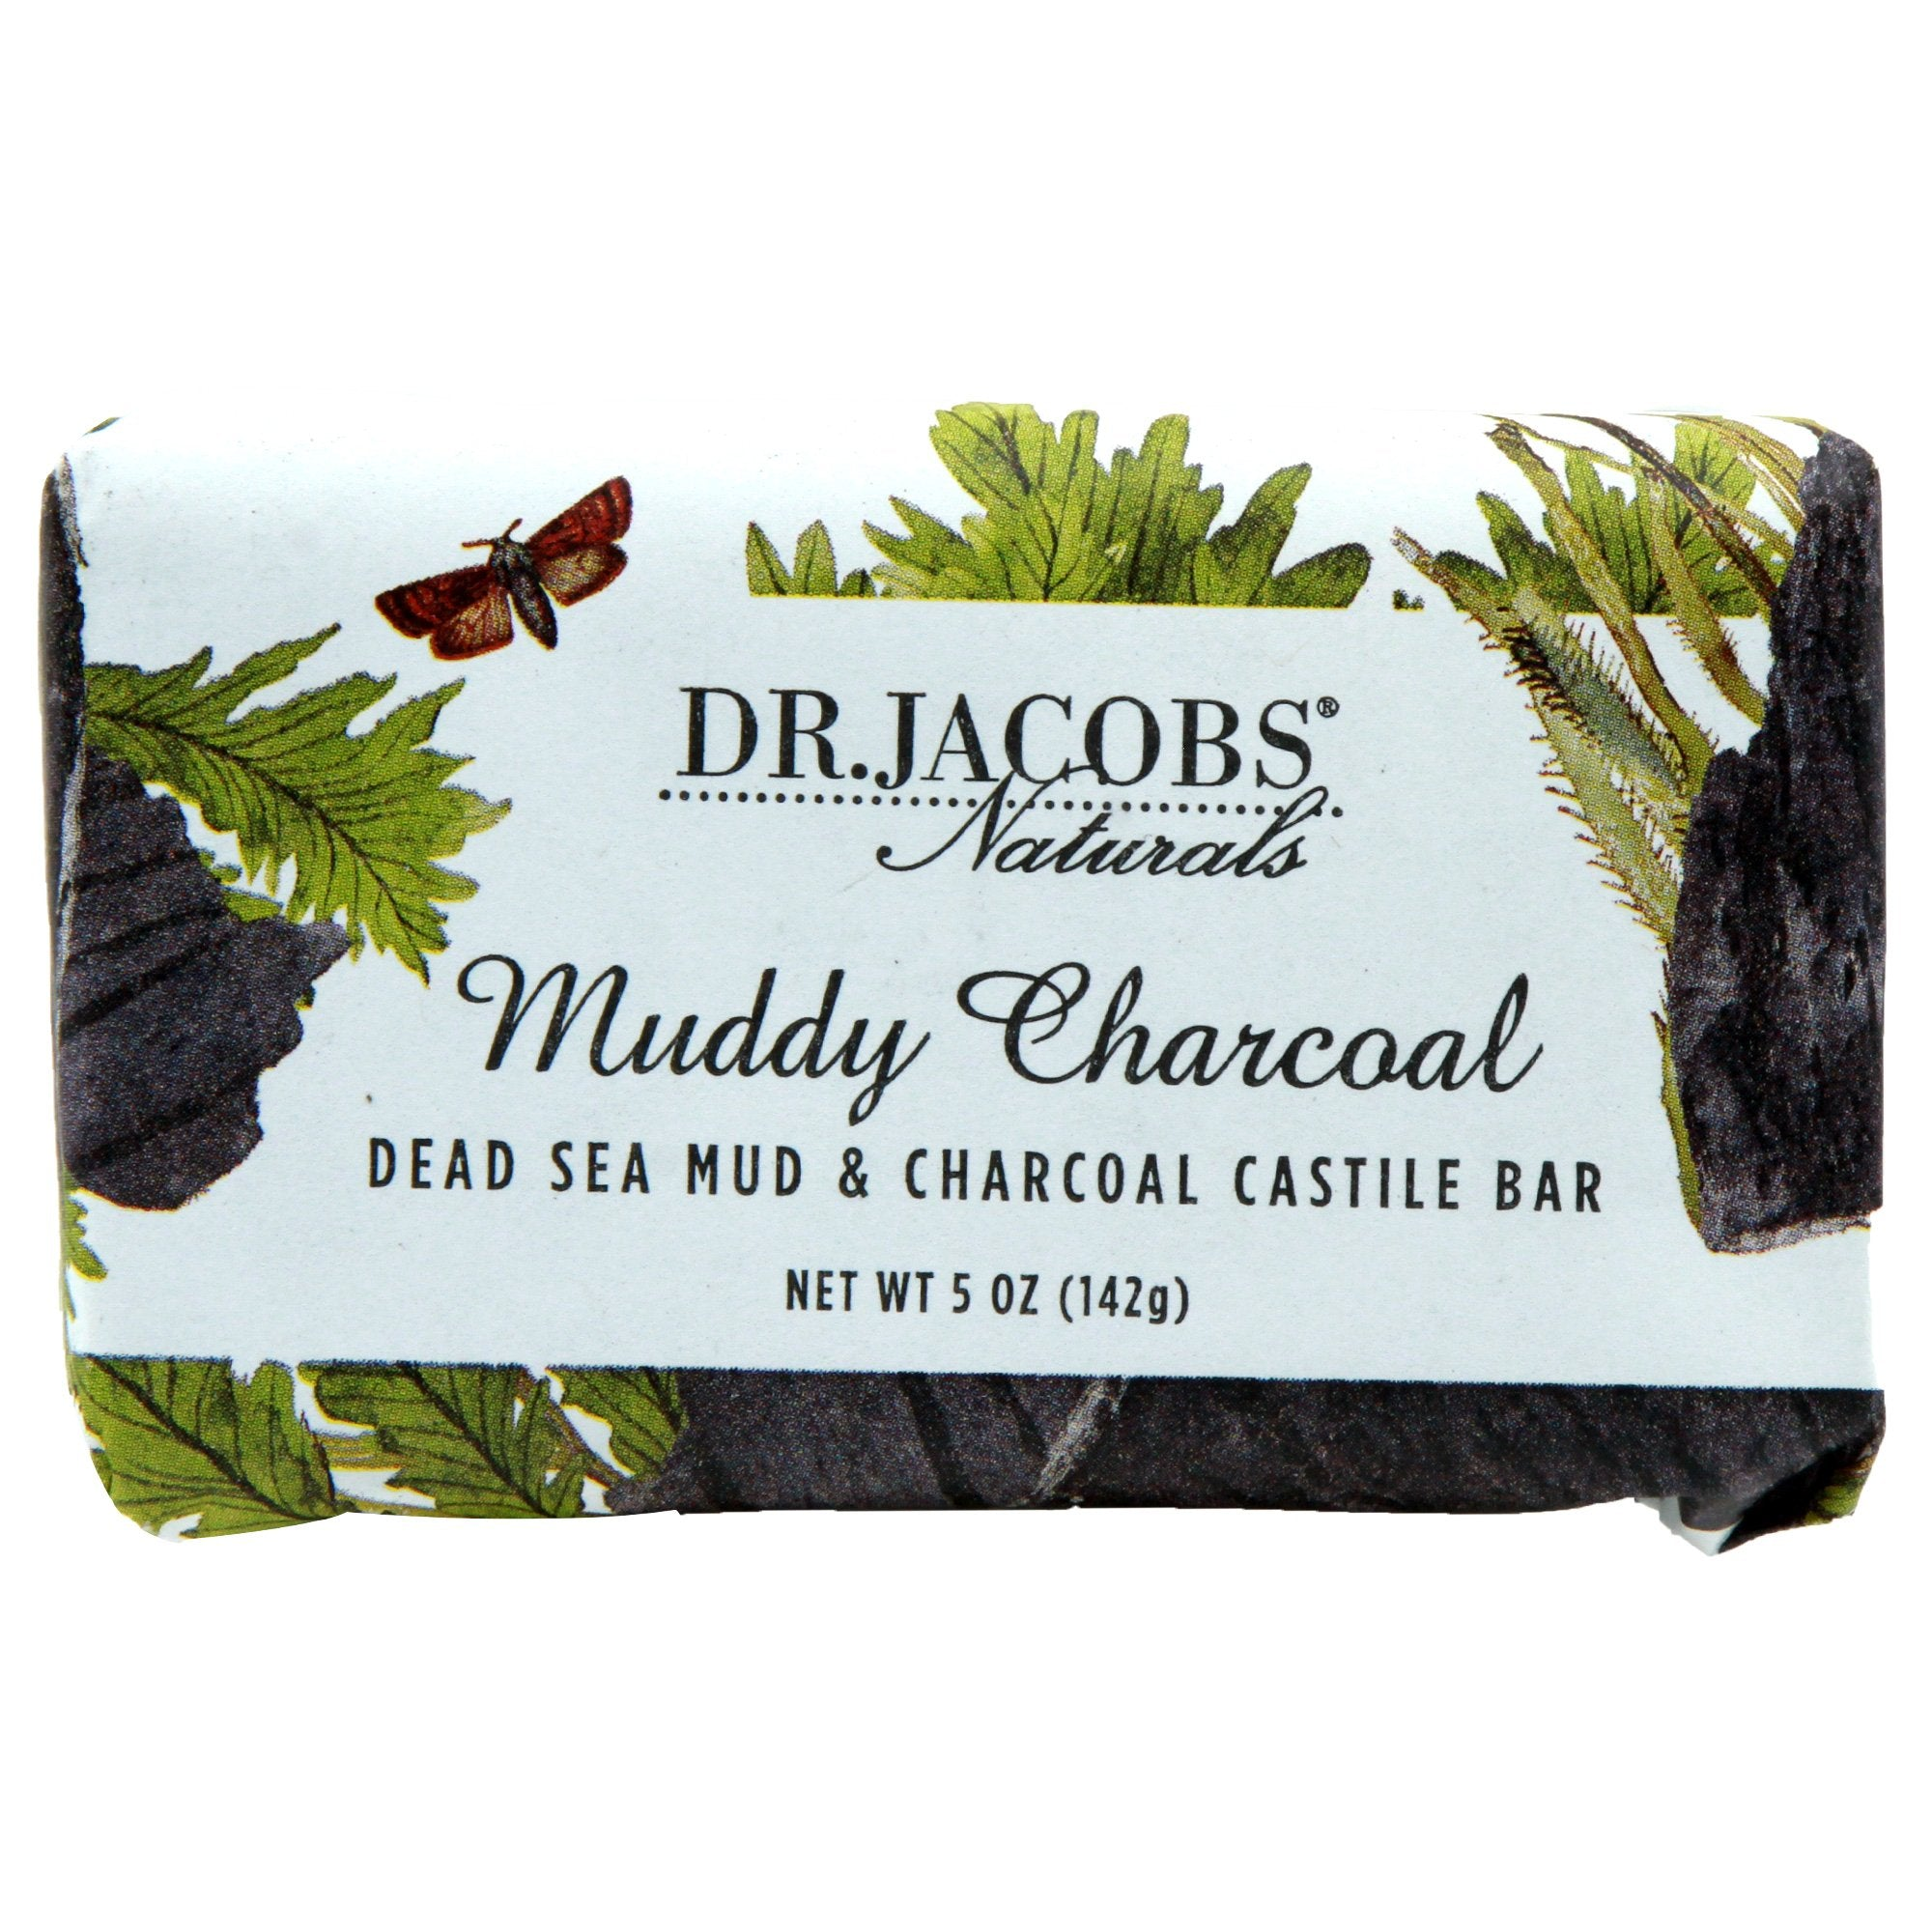 Muddy Charcoal Bar Soap by Dr. Jacobs Naturals